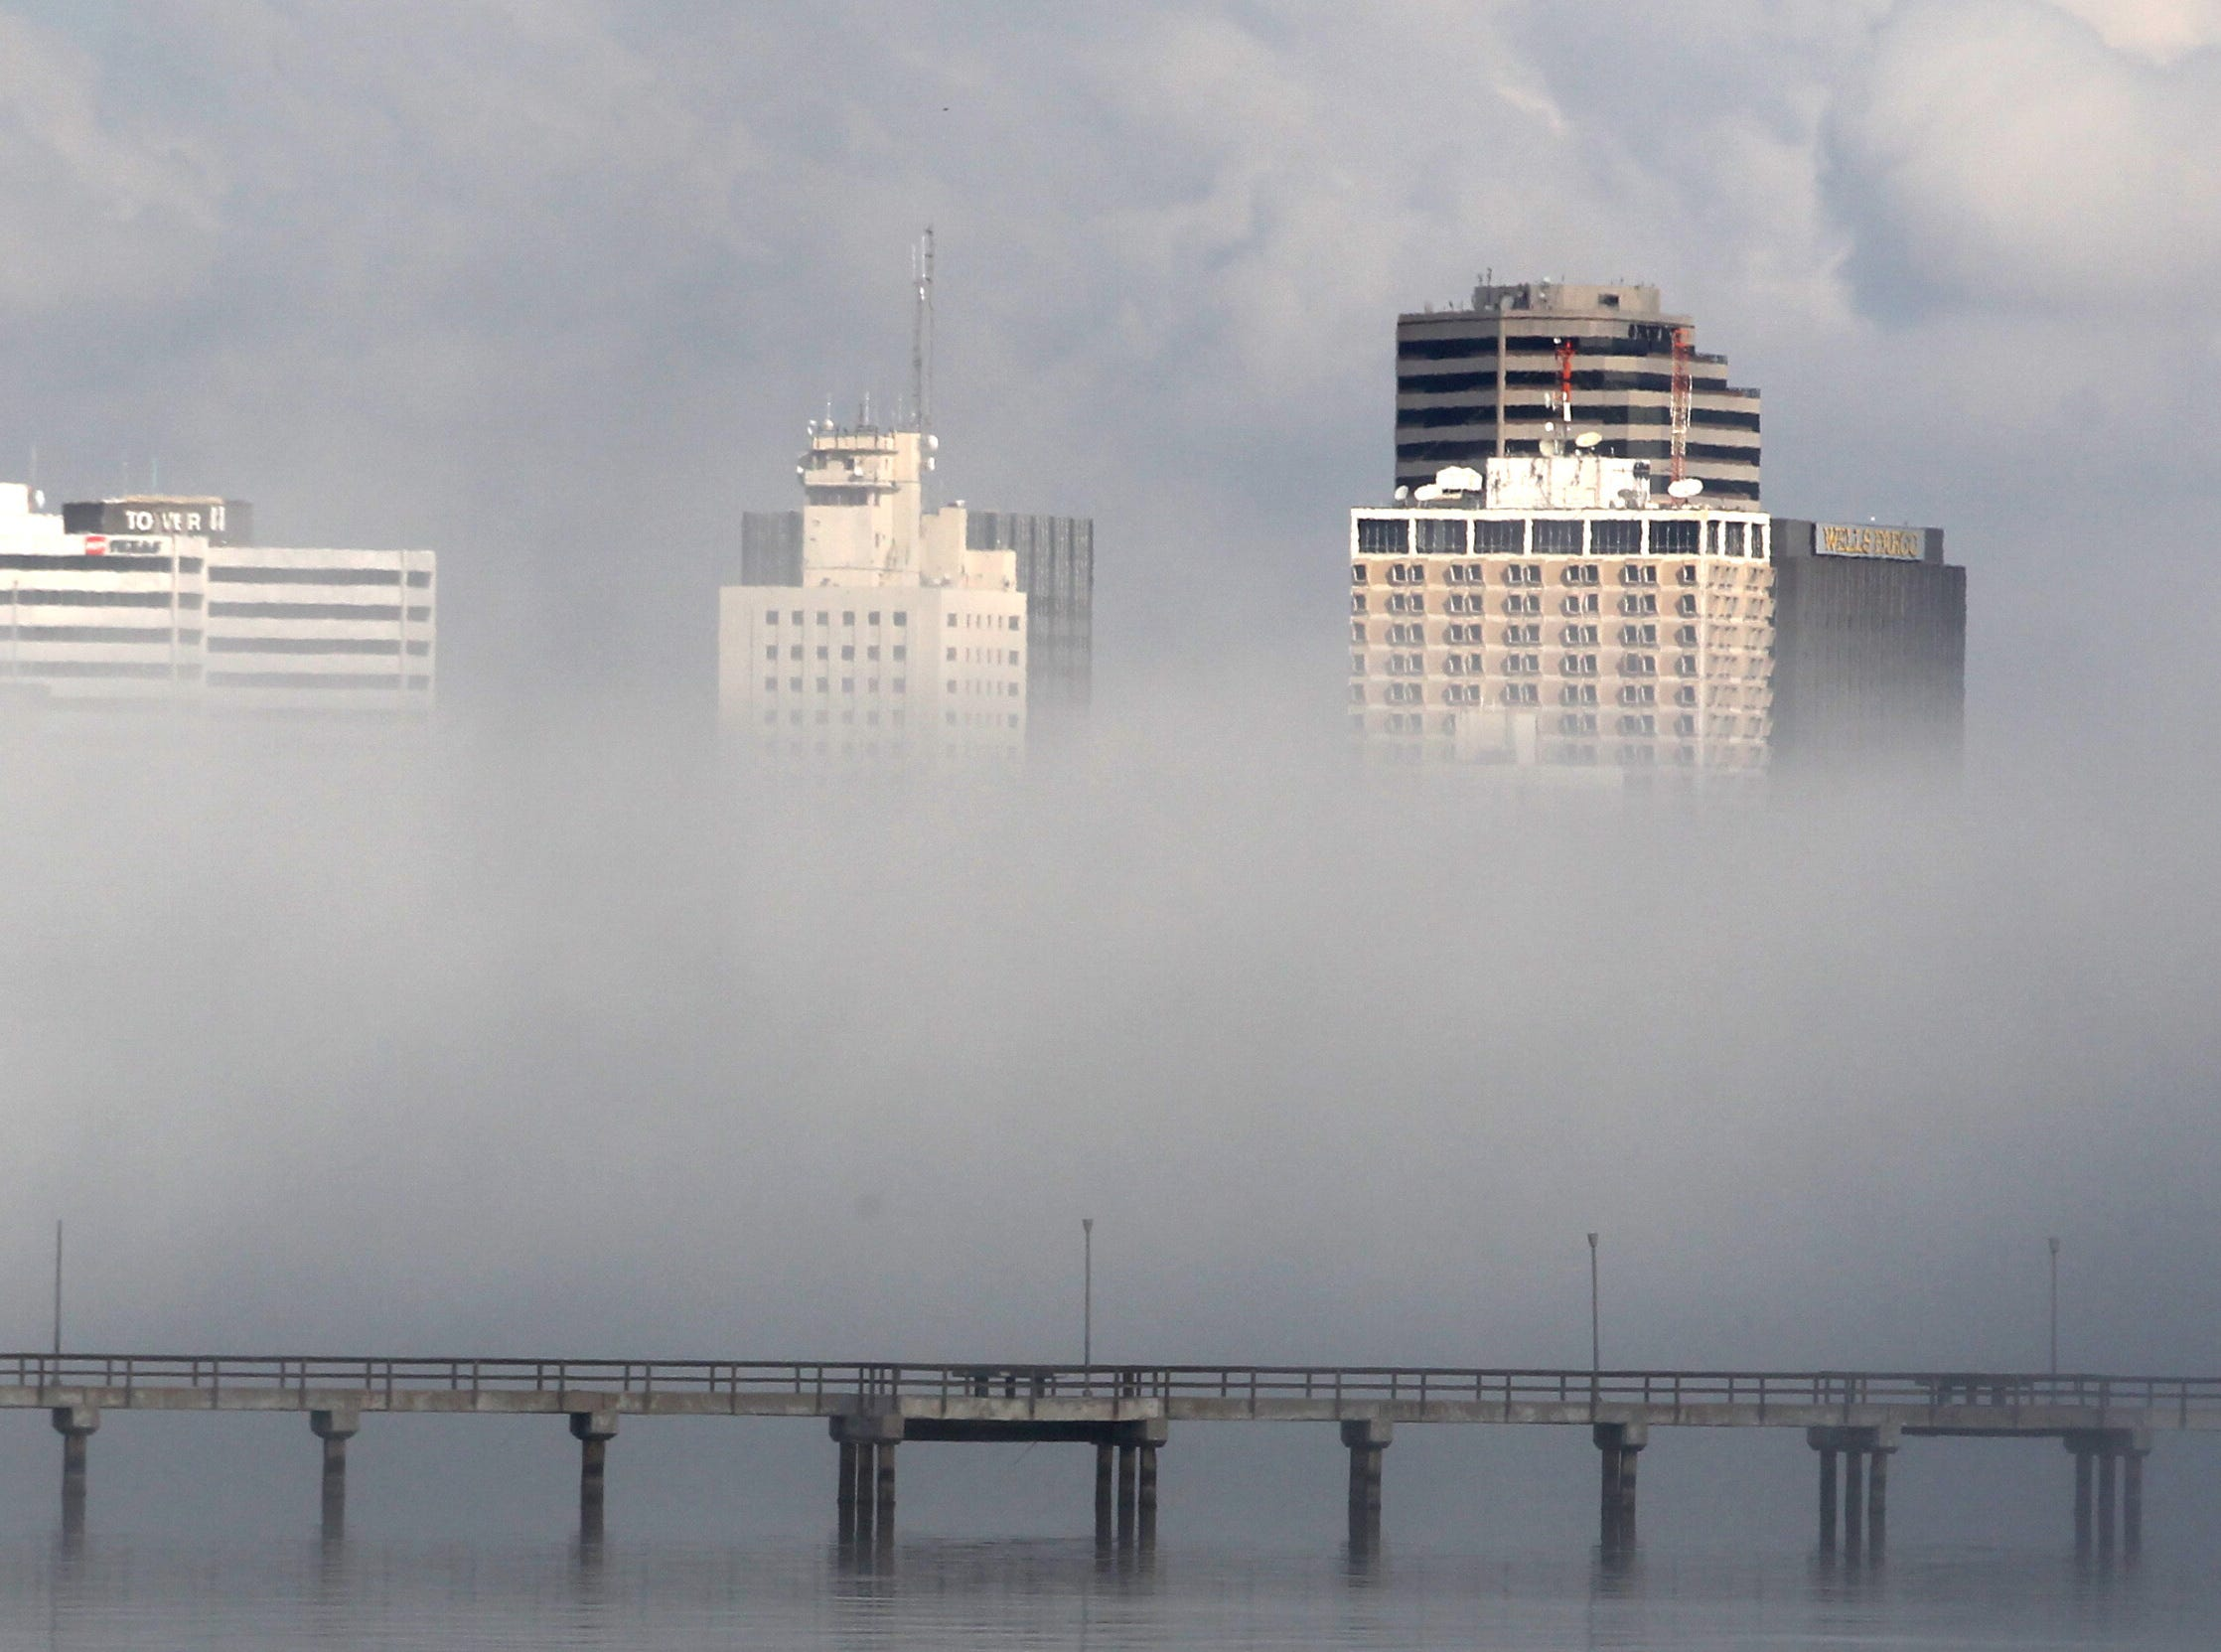 Fog blanketed downtown Corpus Christi on Oct. 31, 2012.